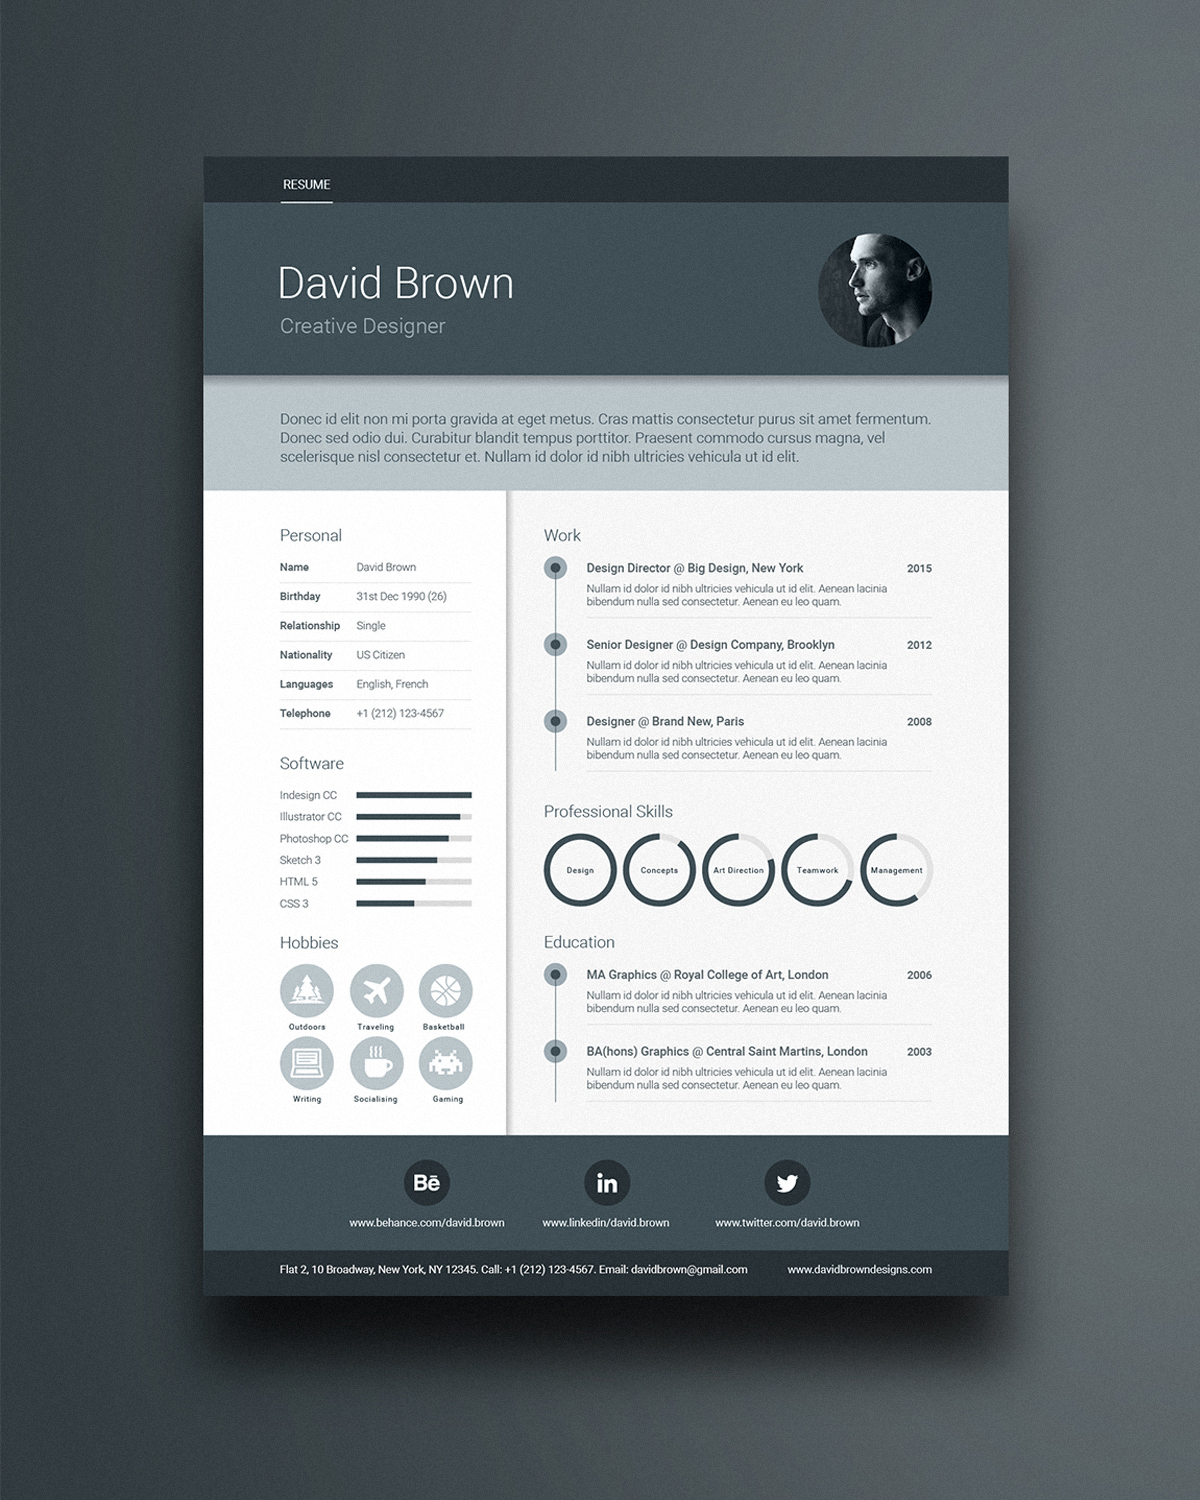 free material design resume template ikono ikonome job application and sample registered Resume Material Design Resume Template Free